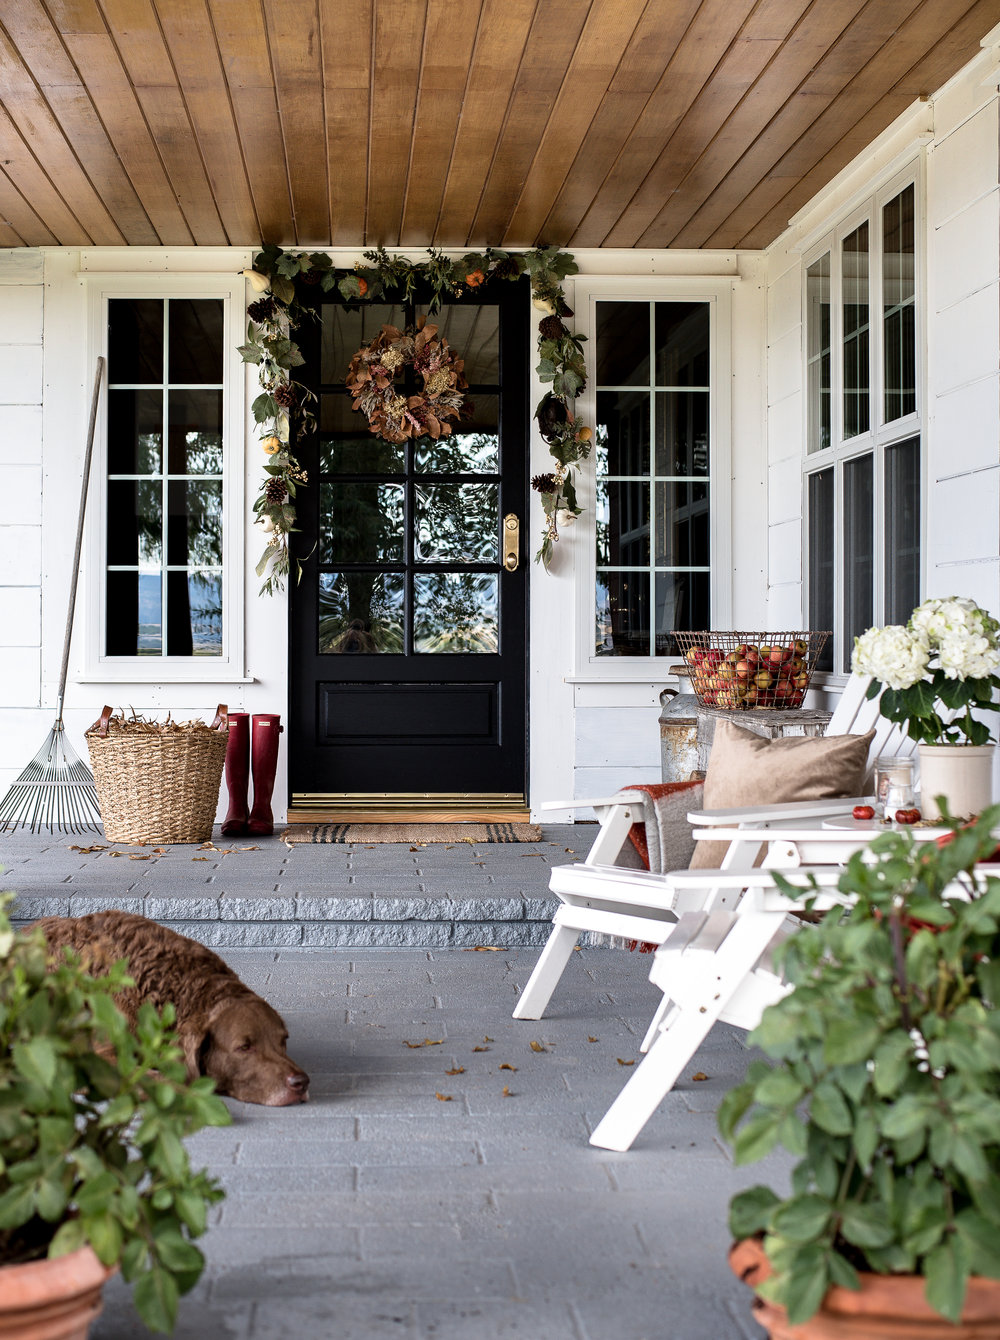 Small Front Porches Designs Front Porch Steps Porch Design: Simple Fall Decorating Ideas For Your Front Porch